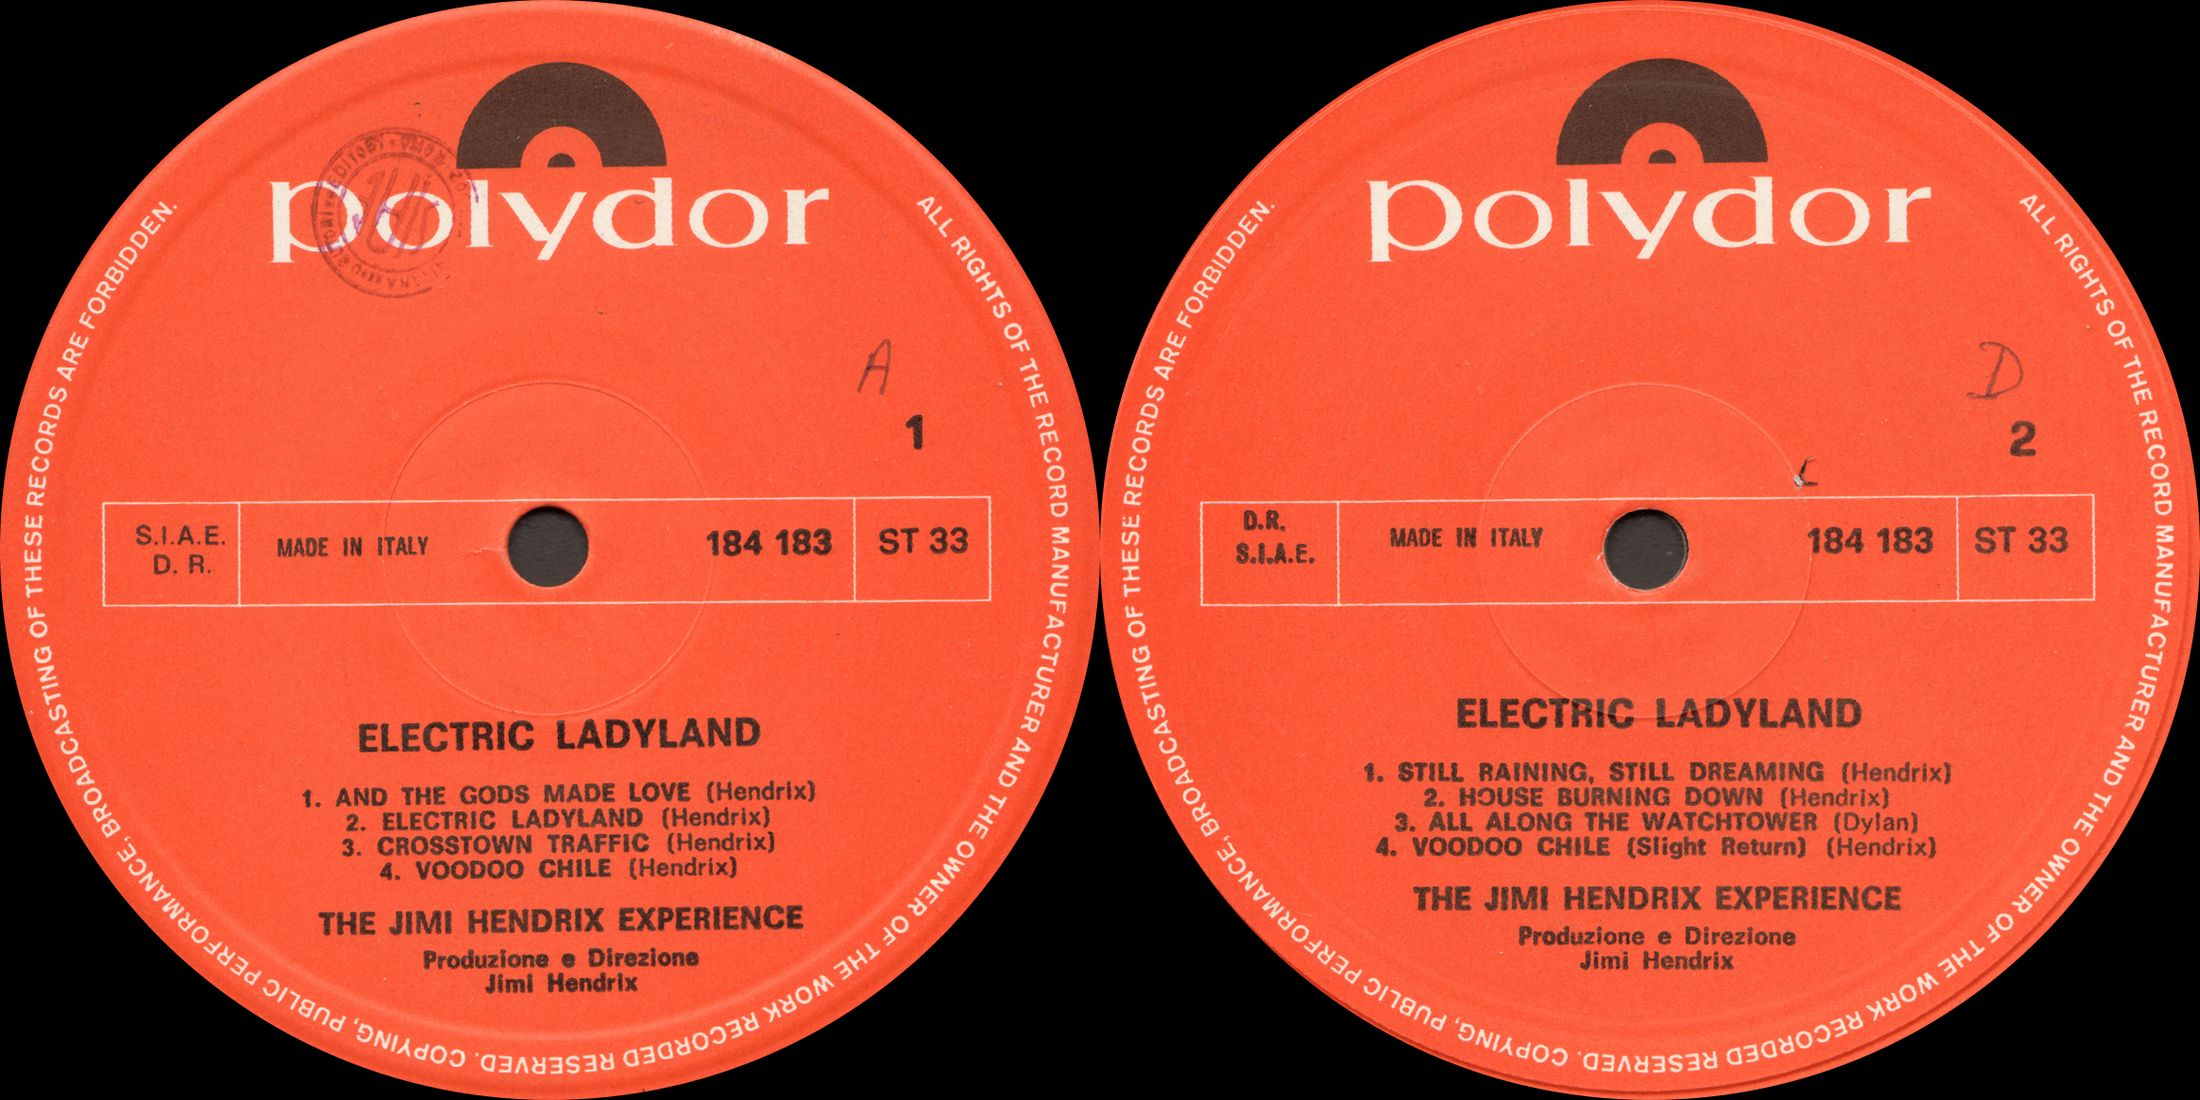 Discographie : Rééditions & Compilations - Page 13 Jimi%20Hendrix%20-%20Electric%20Ladyland%20-%20Polydor%20SLPHM-D-184183-84%20-%20Label2%20Italy